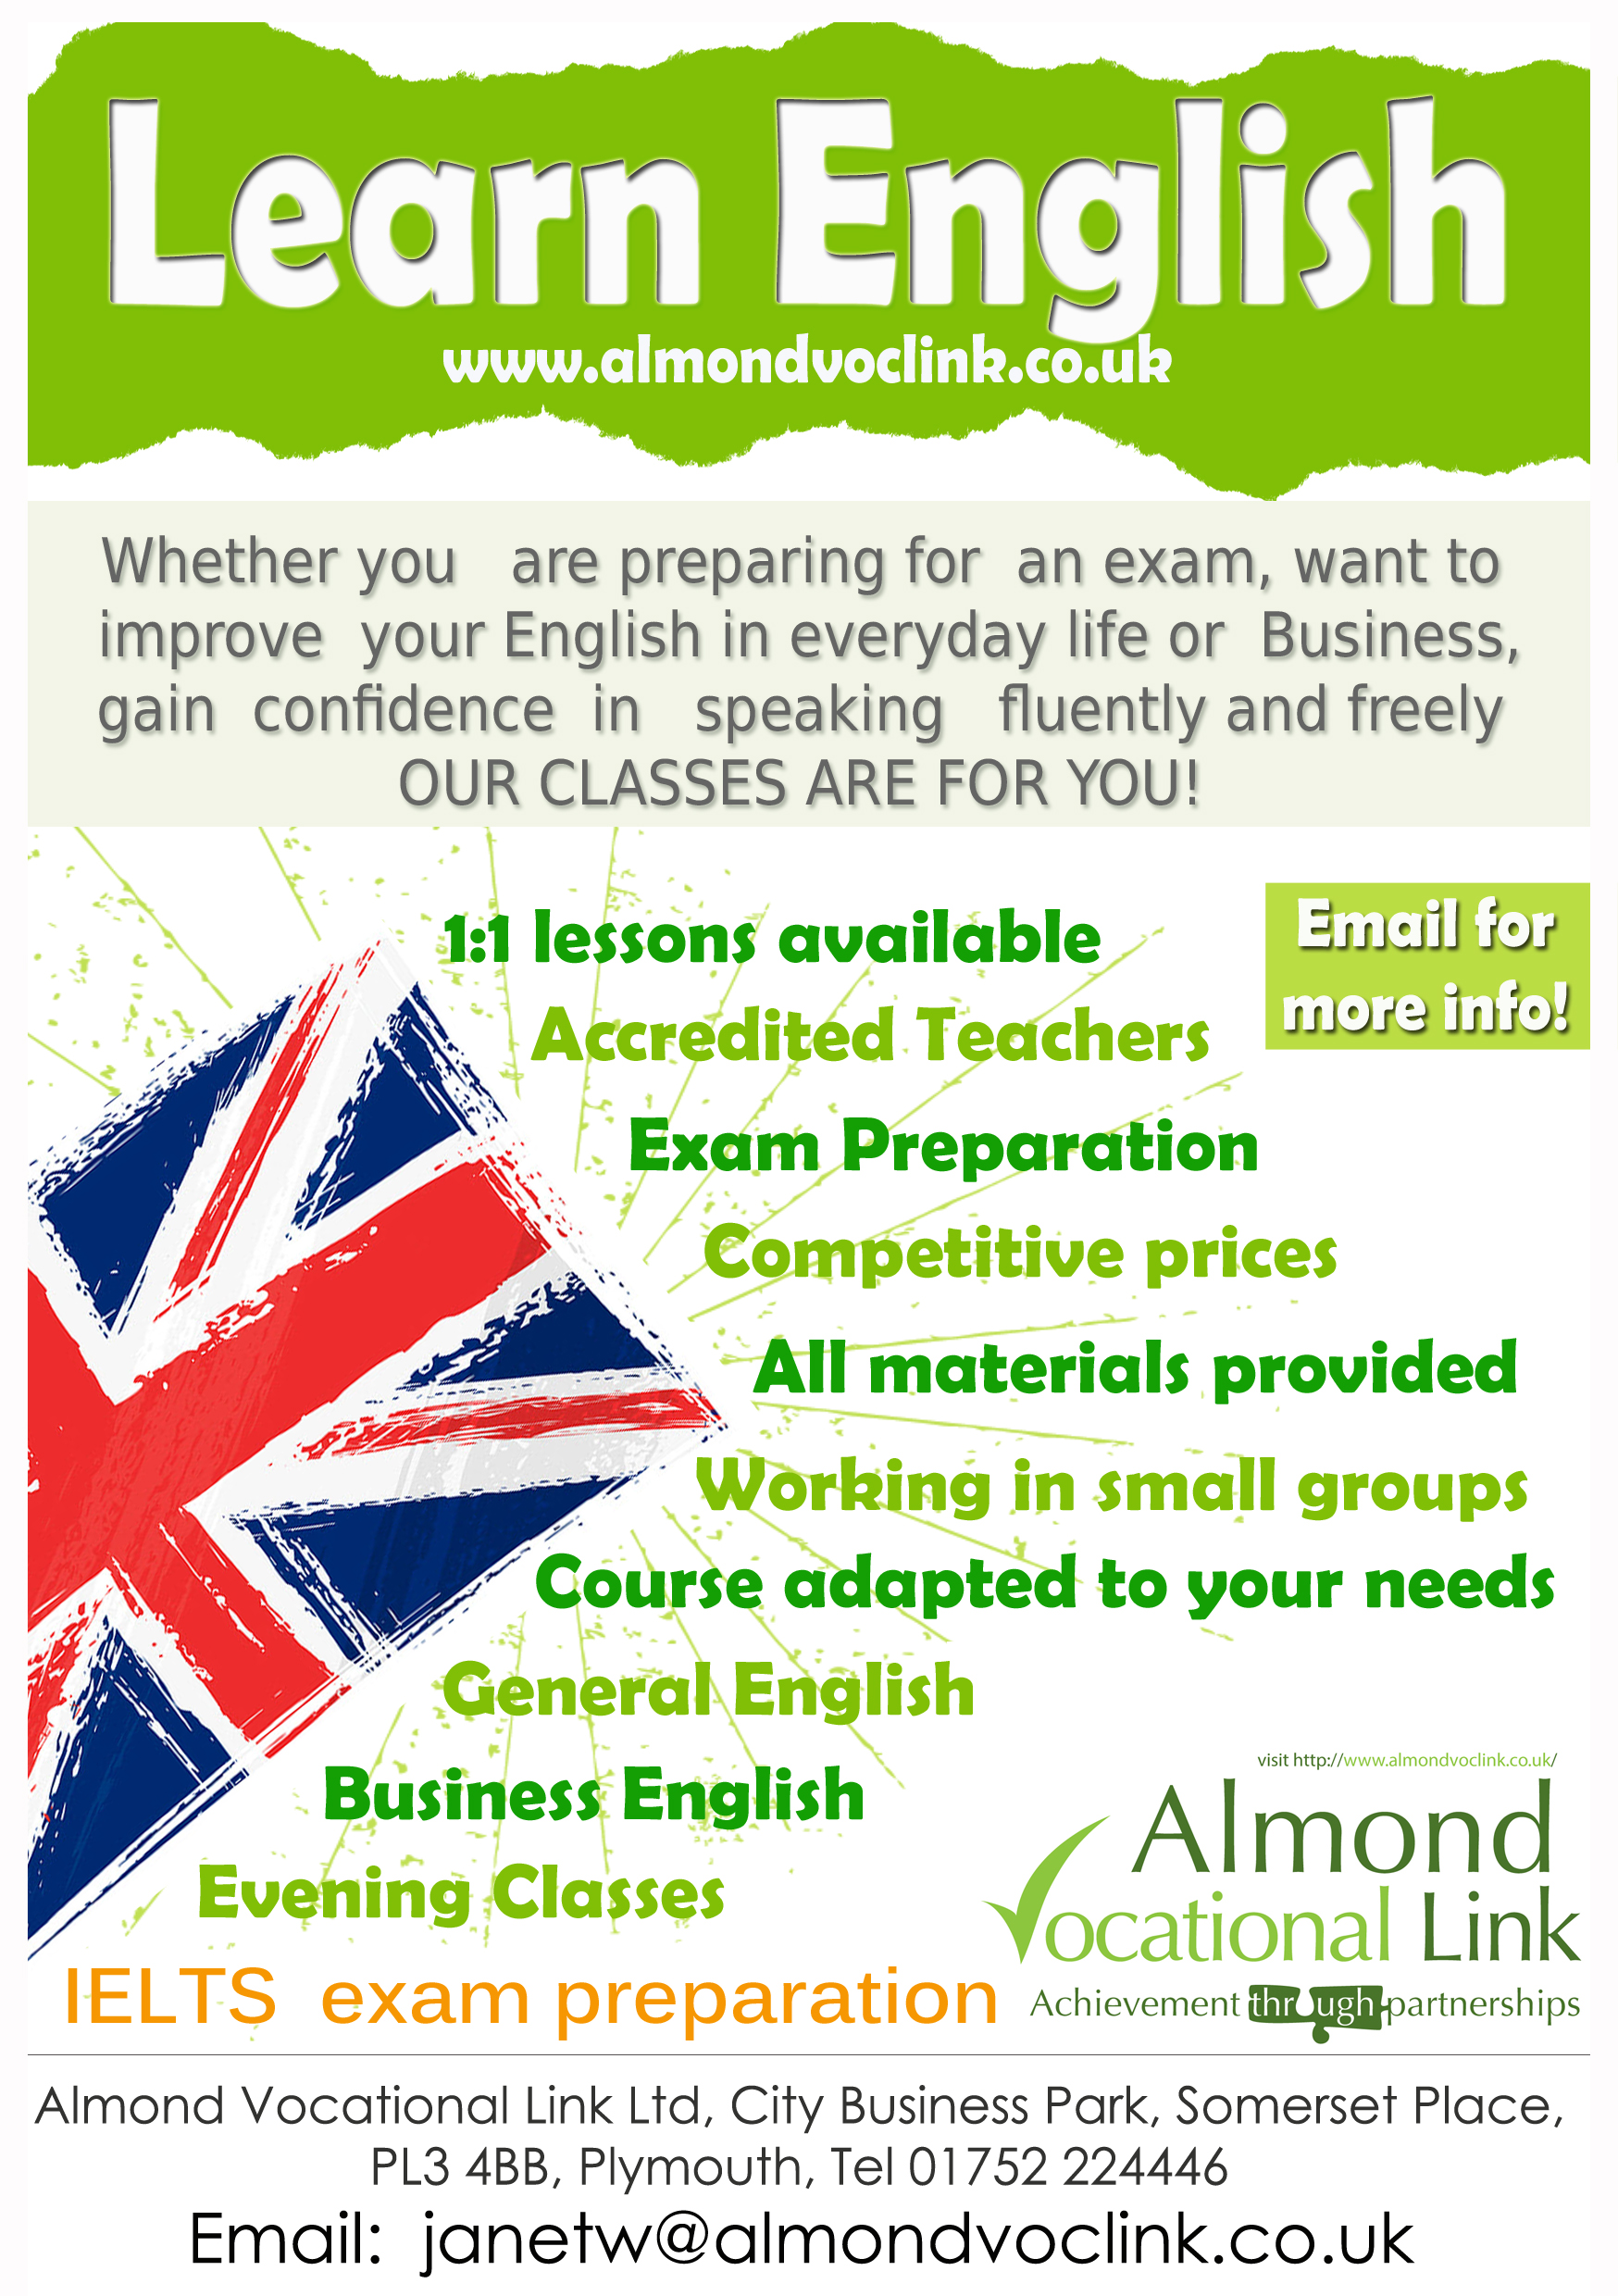 english language courses in plymouth almond vocational link english language courses in plymouth english language training poster almond vocational